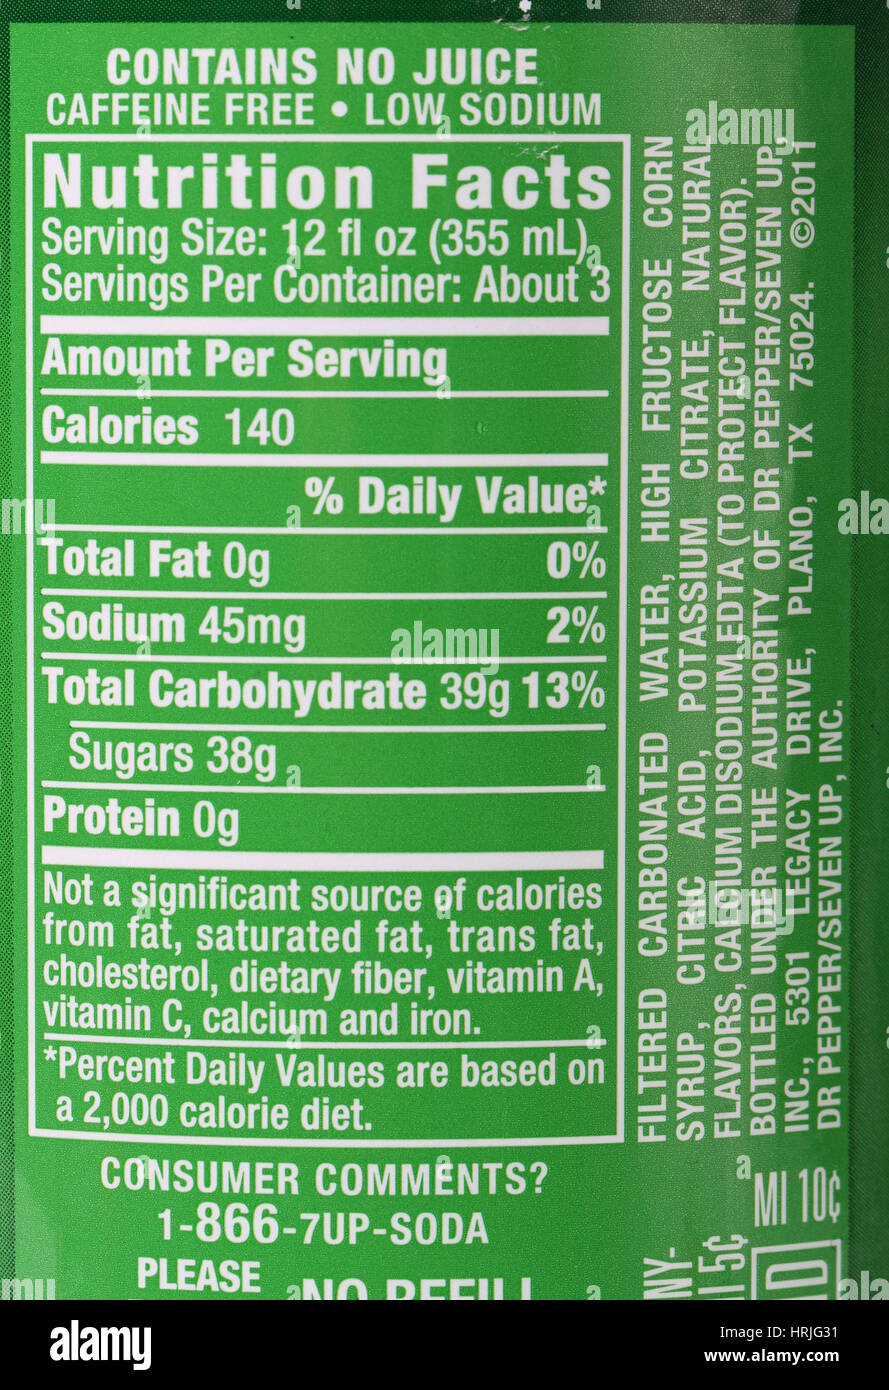 nutrition facts for soda pop soft drink stock photo: 135017429 - alamy